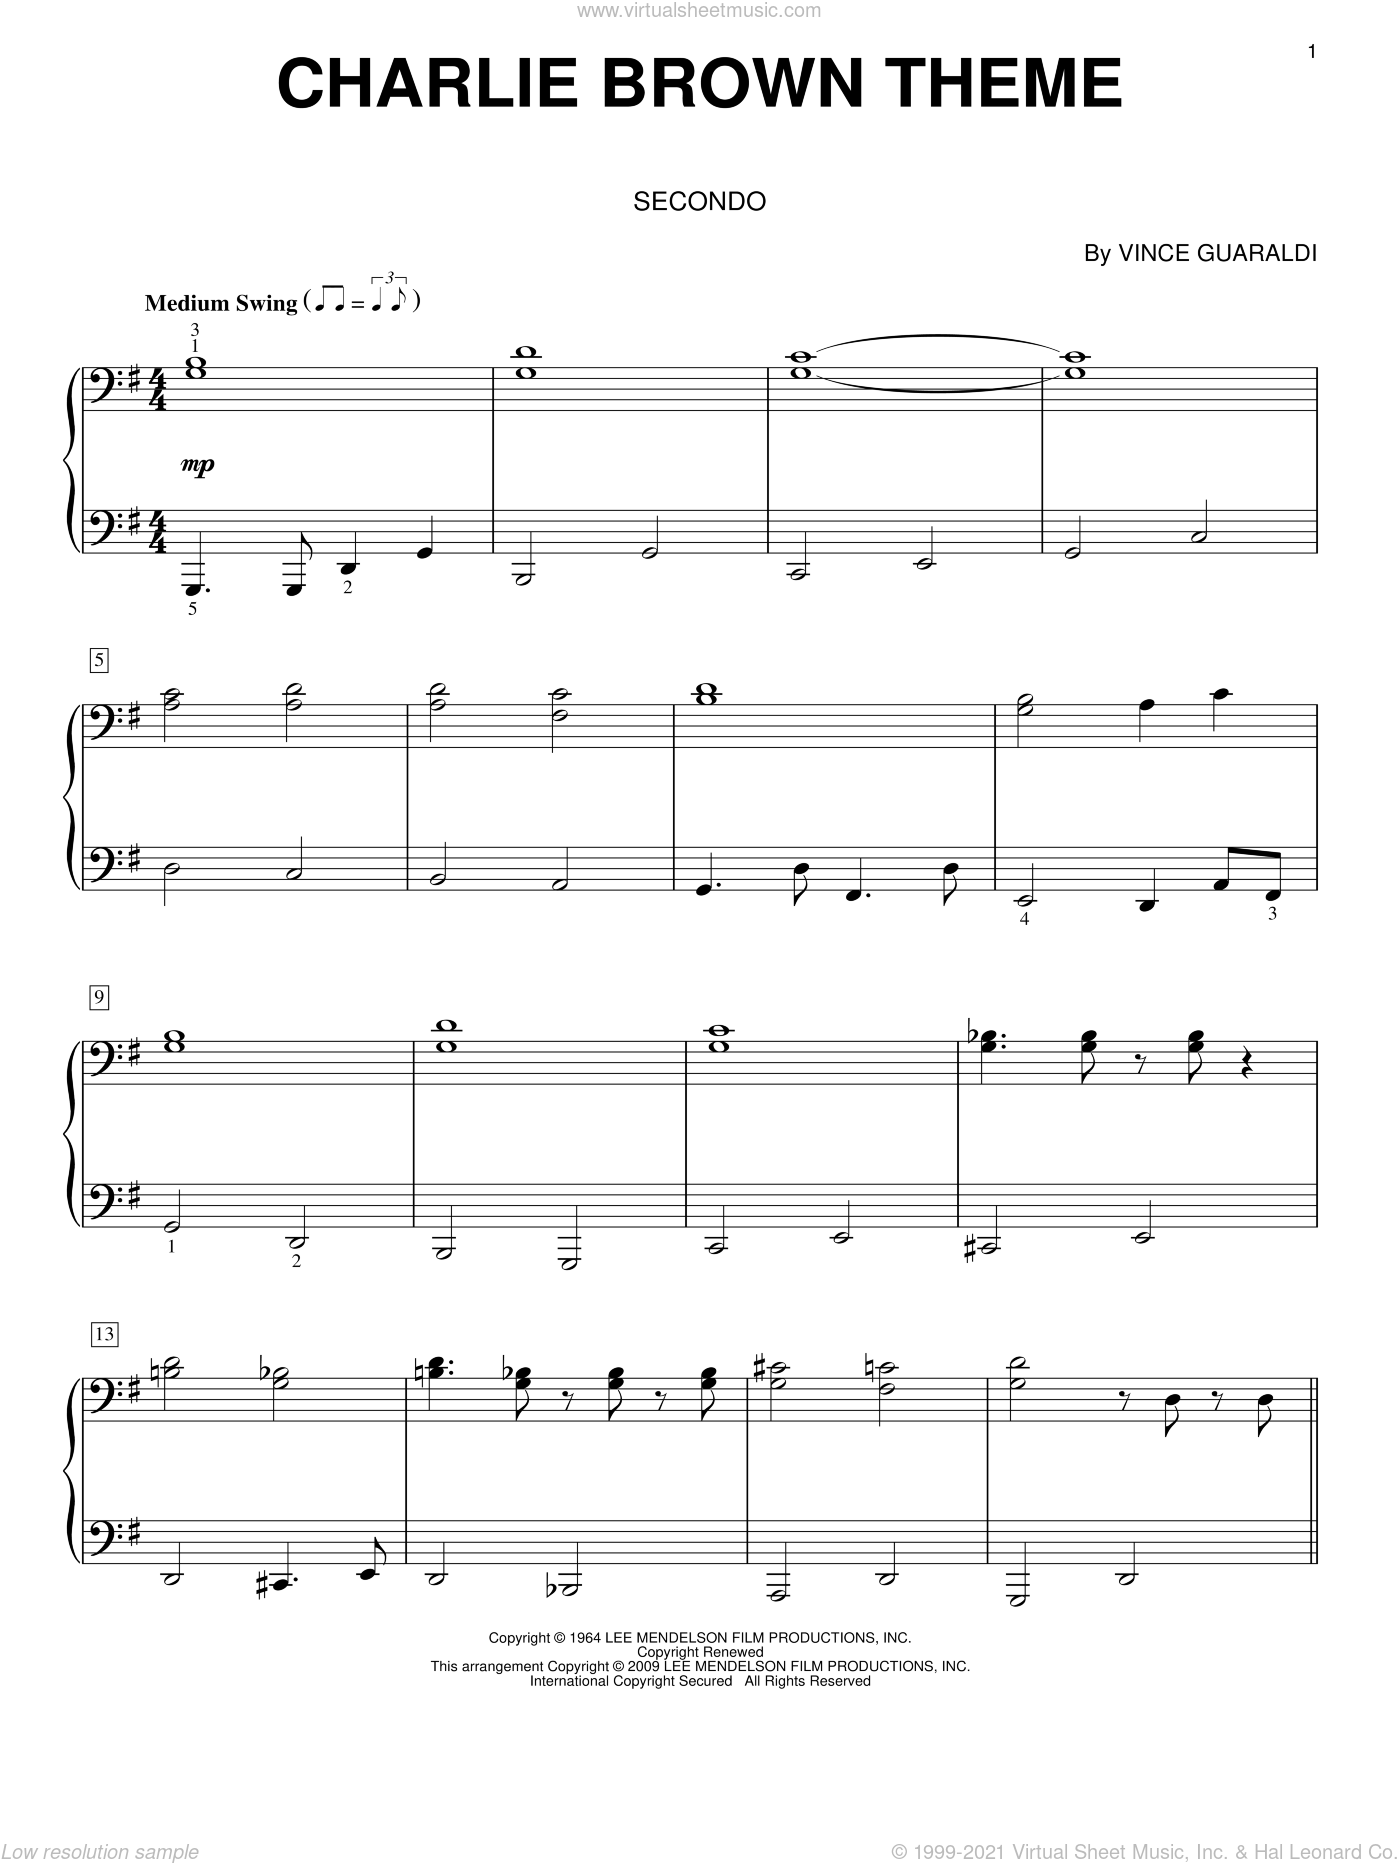 Charlie Brown Theme sheet music for piano four hands (duets) by Vince Guaraldi. Score Image Preview.